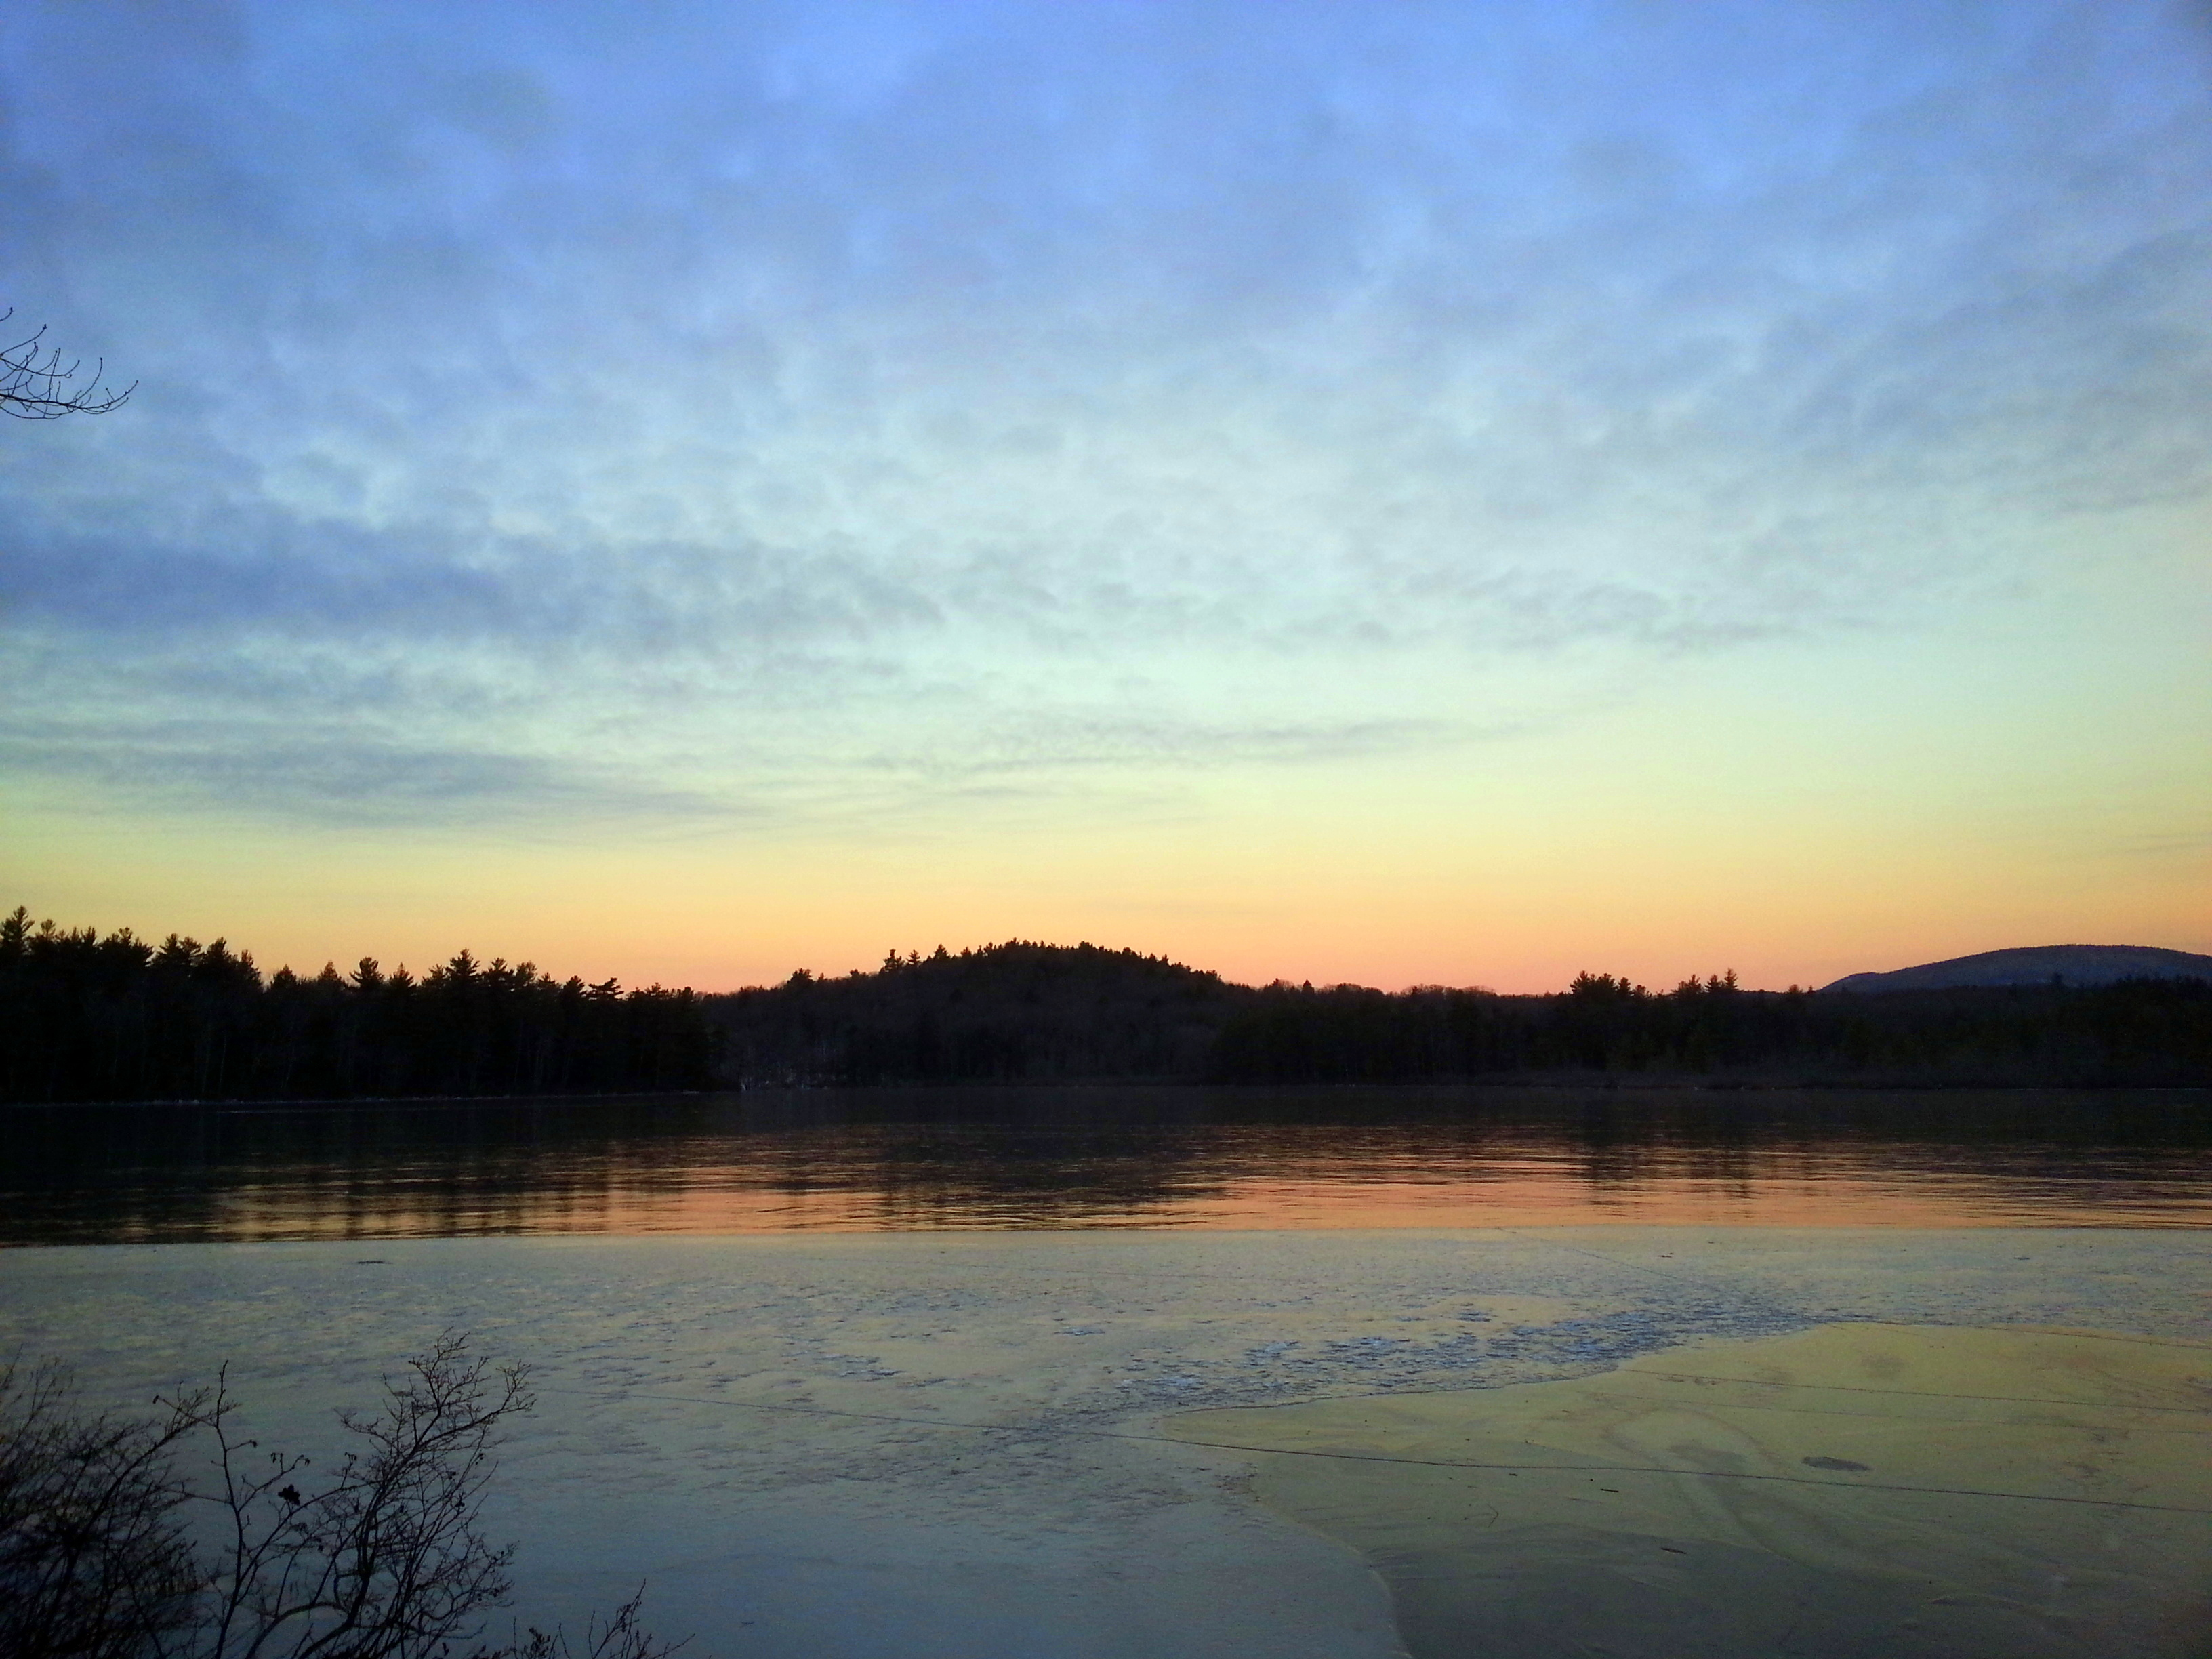 4. Half Moon Pond at Sunrise